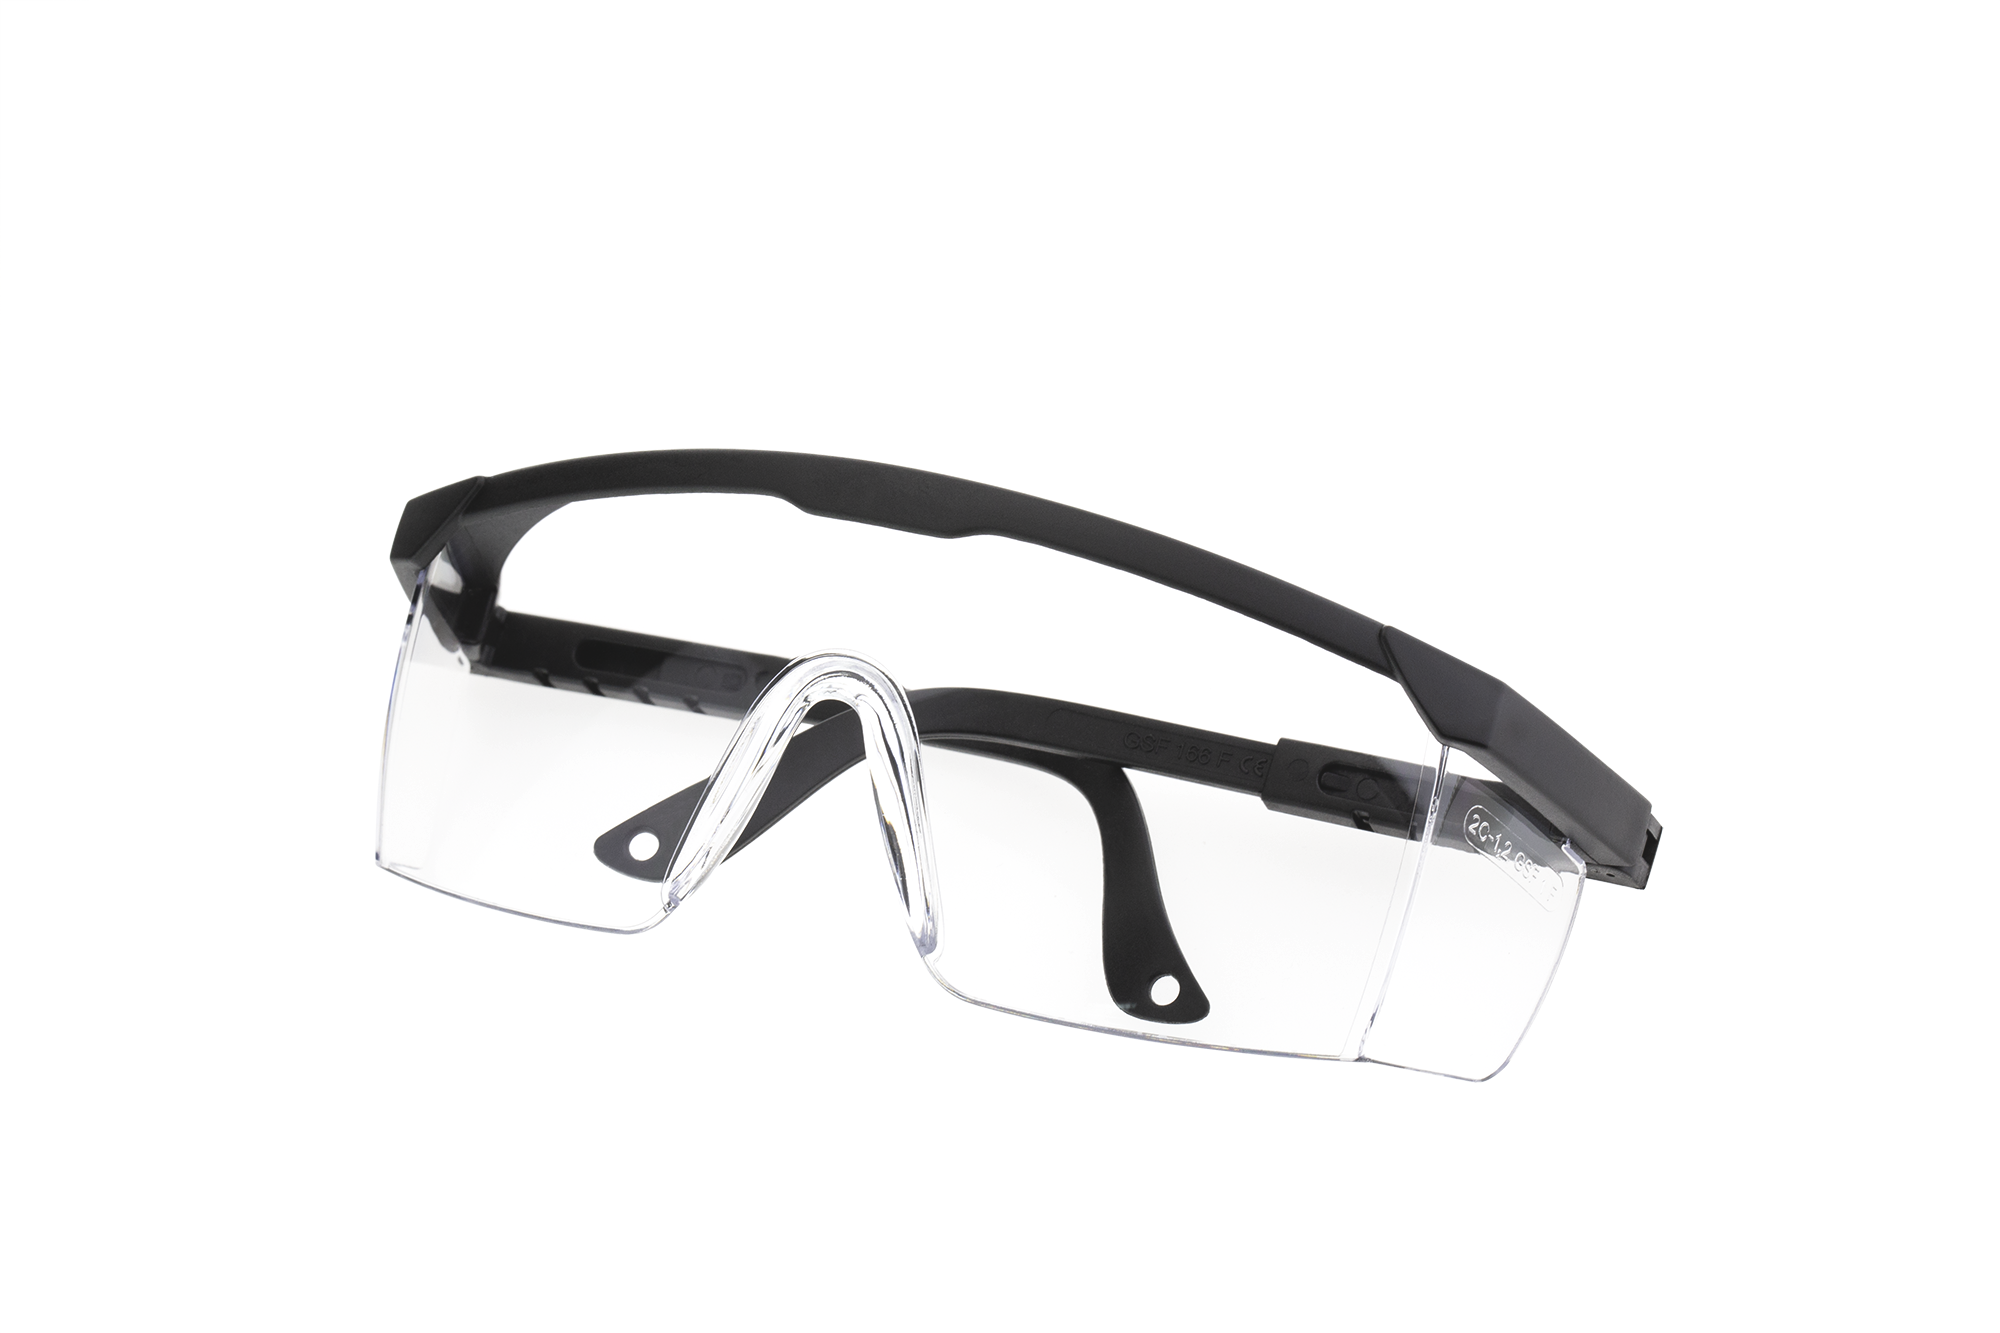 台灣製造 抗飛濺 防霧護目鏡 V01 | Anti-Fog Protective Splash Eyewear V01